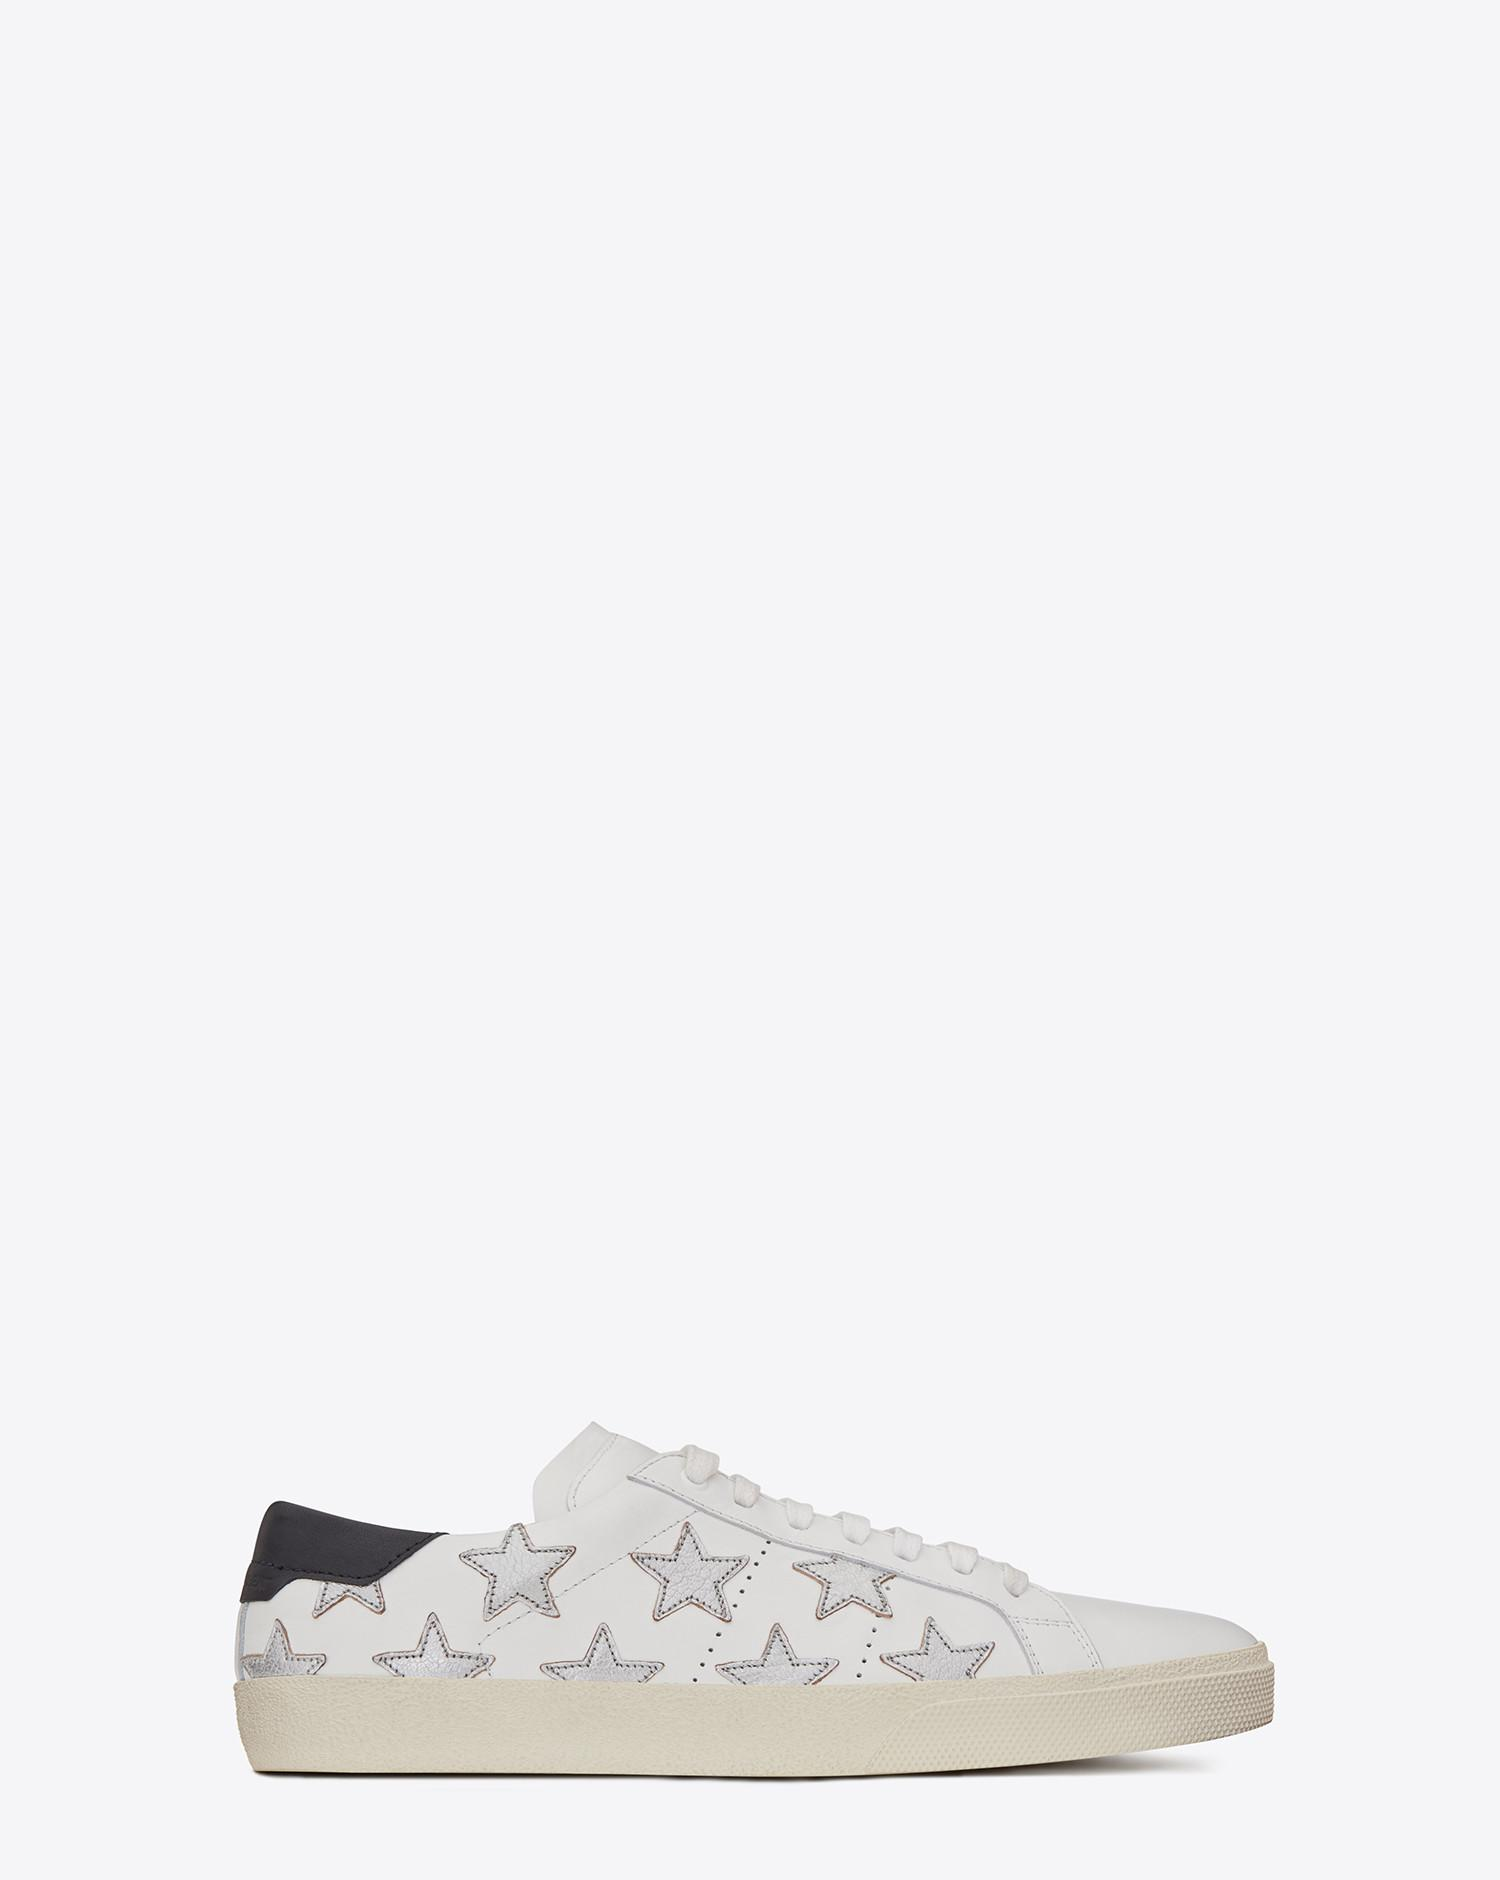 346fccf0afc Lyst - Saint Laurent Court Classic Sl/06 Metallic California Sneaker In  Leather in White for Men